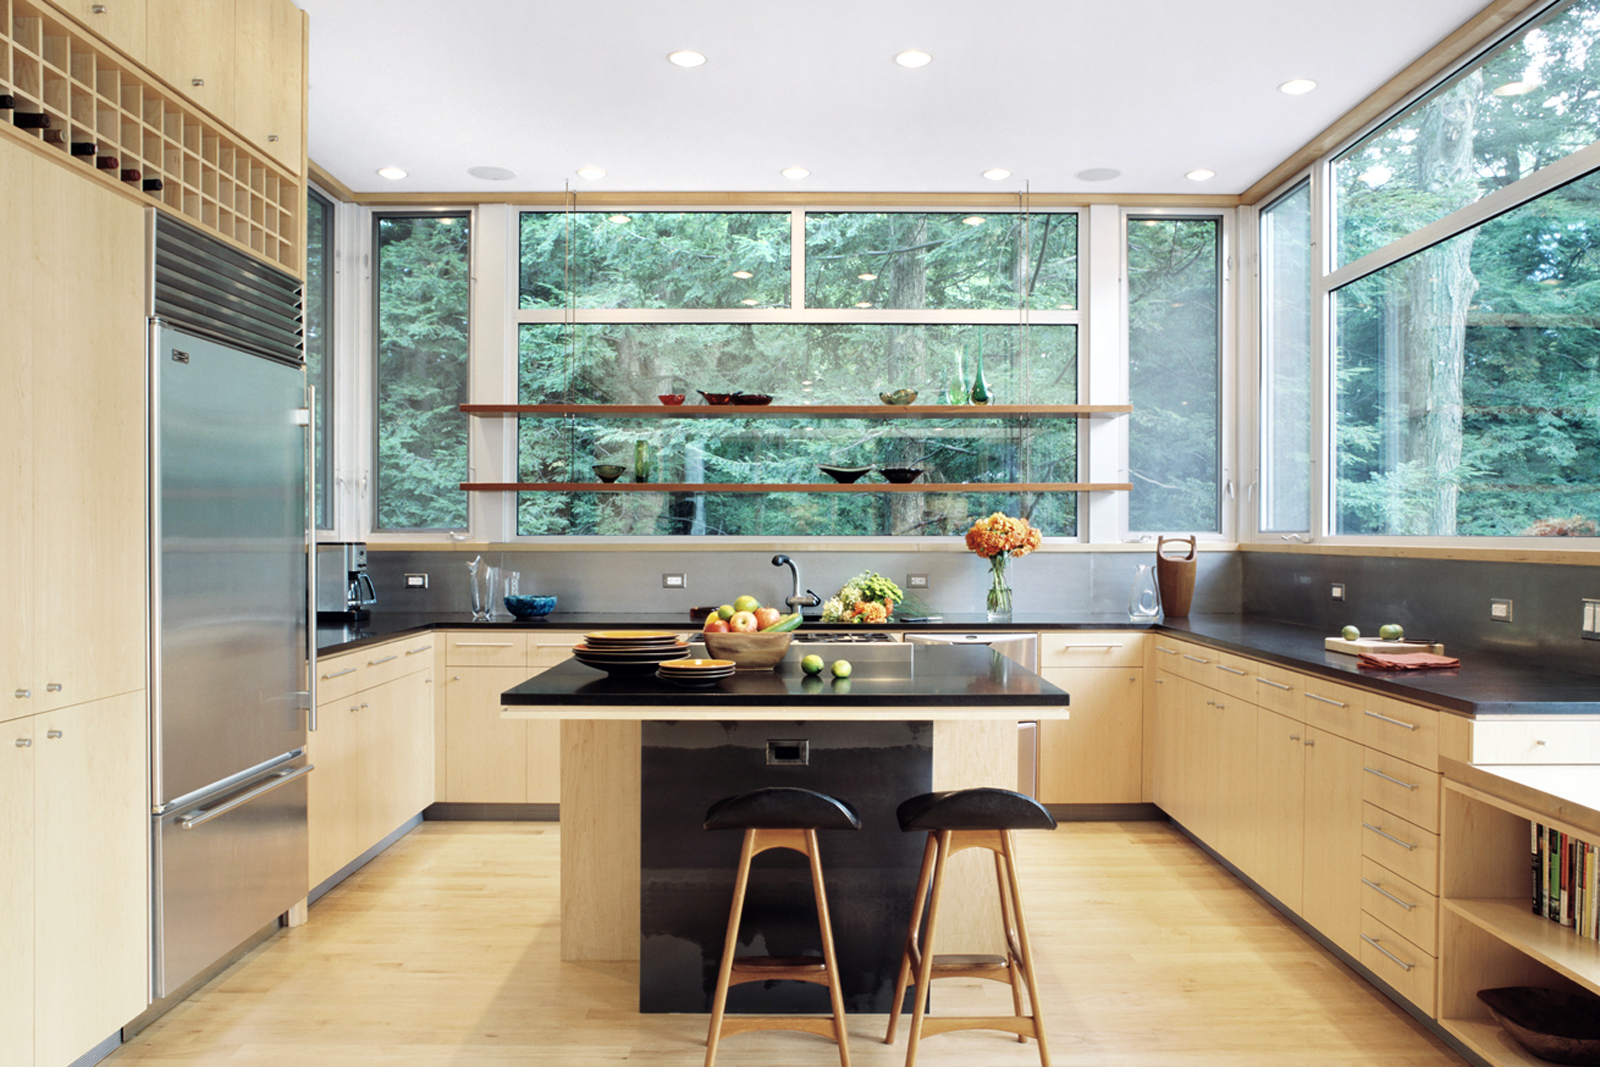 09-res4-resolution-4-architecture-modern-home-residential-lakeside-house-interior-kitchen.jpg